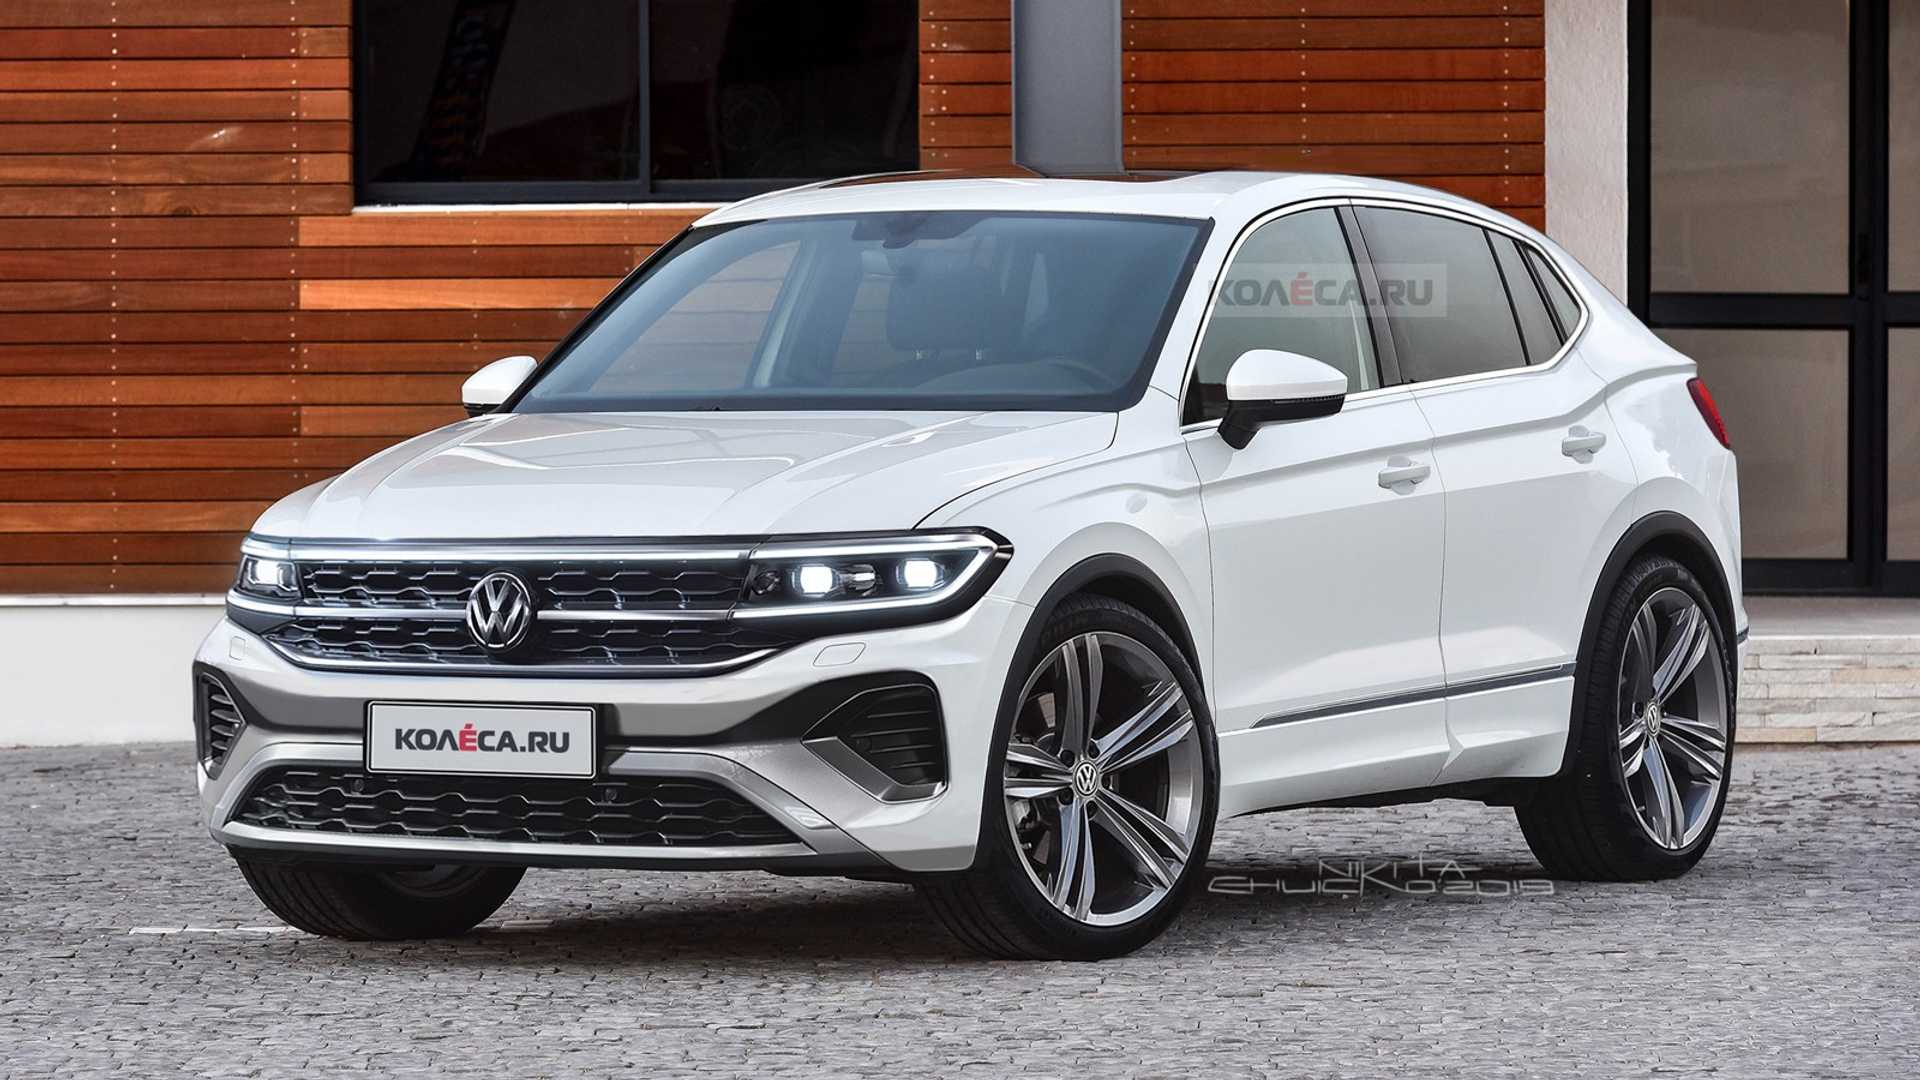 22 New Volkswagen Tiguan 2020 Release Date and Concept